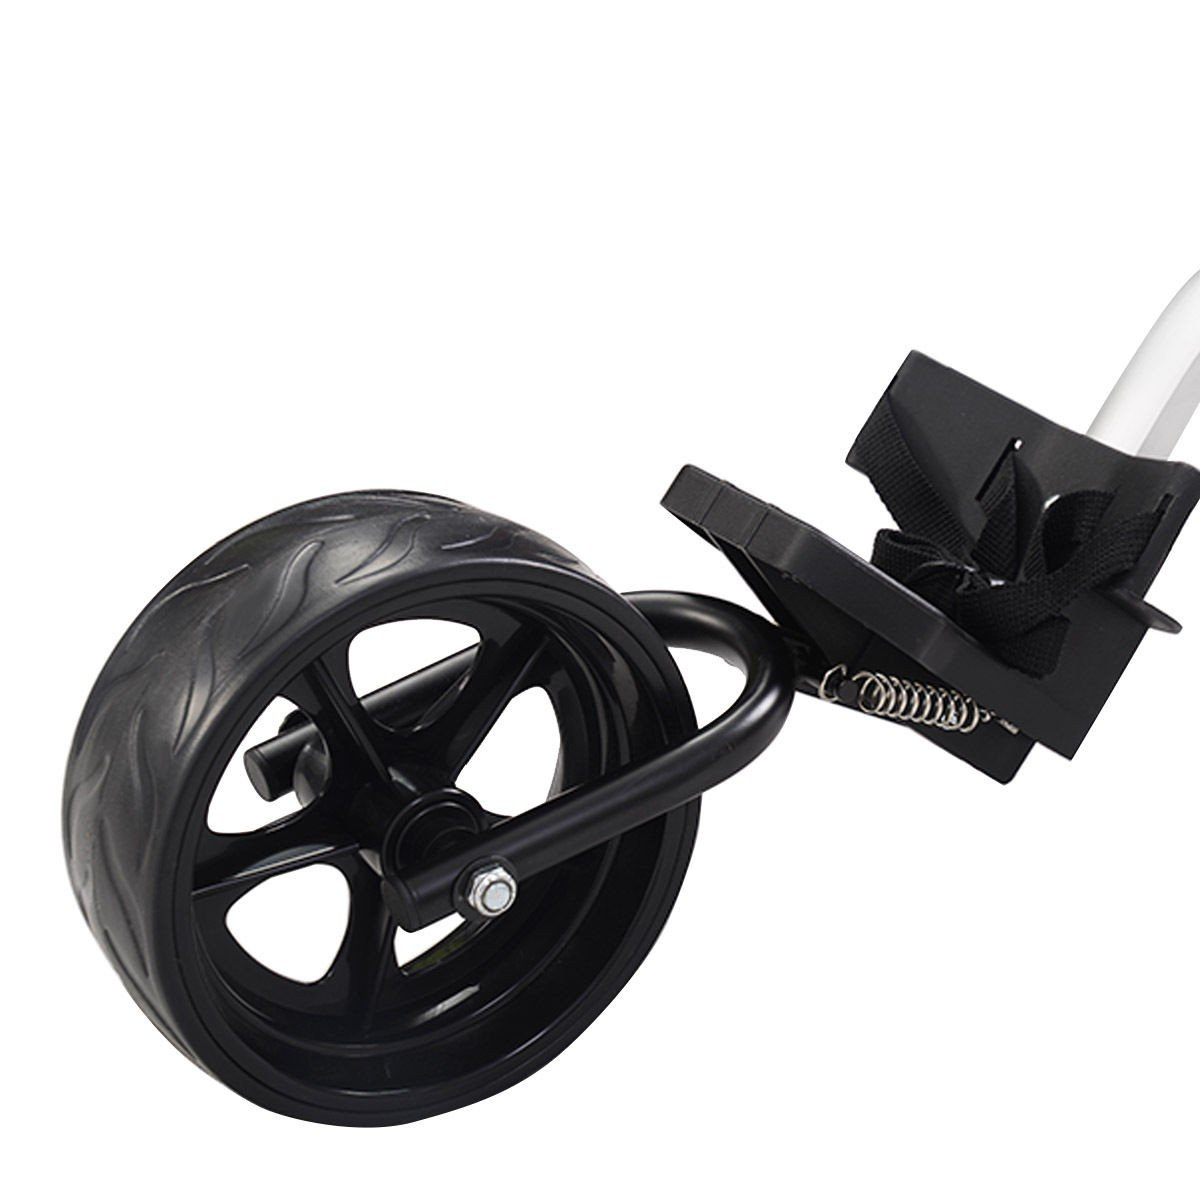 MD Group Golf Cart Push Trolley Pull Wheel Foldable Club Swivel Holder Lightweight Aluminum by MD Group (Image #6)